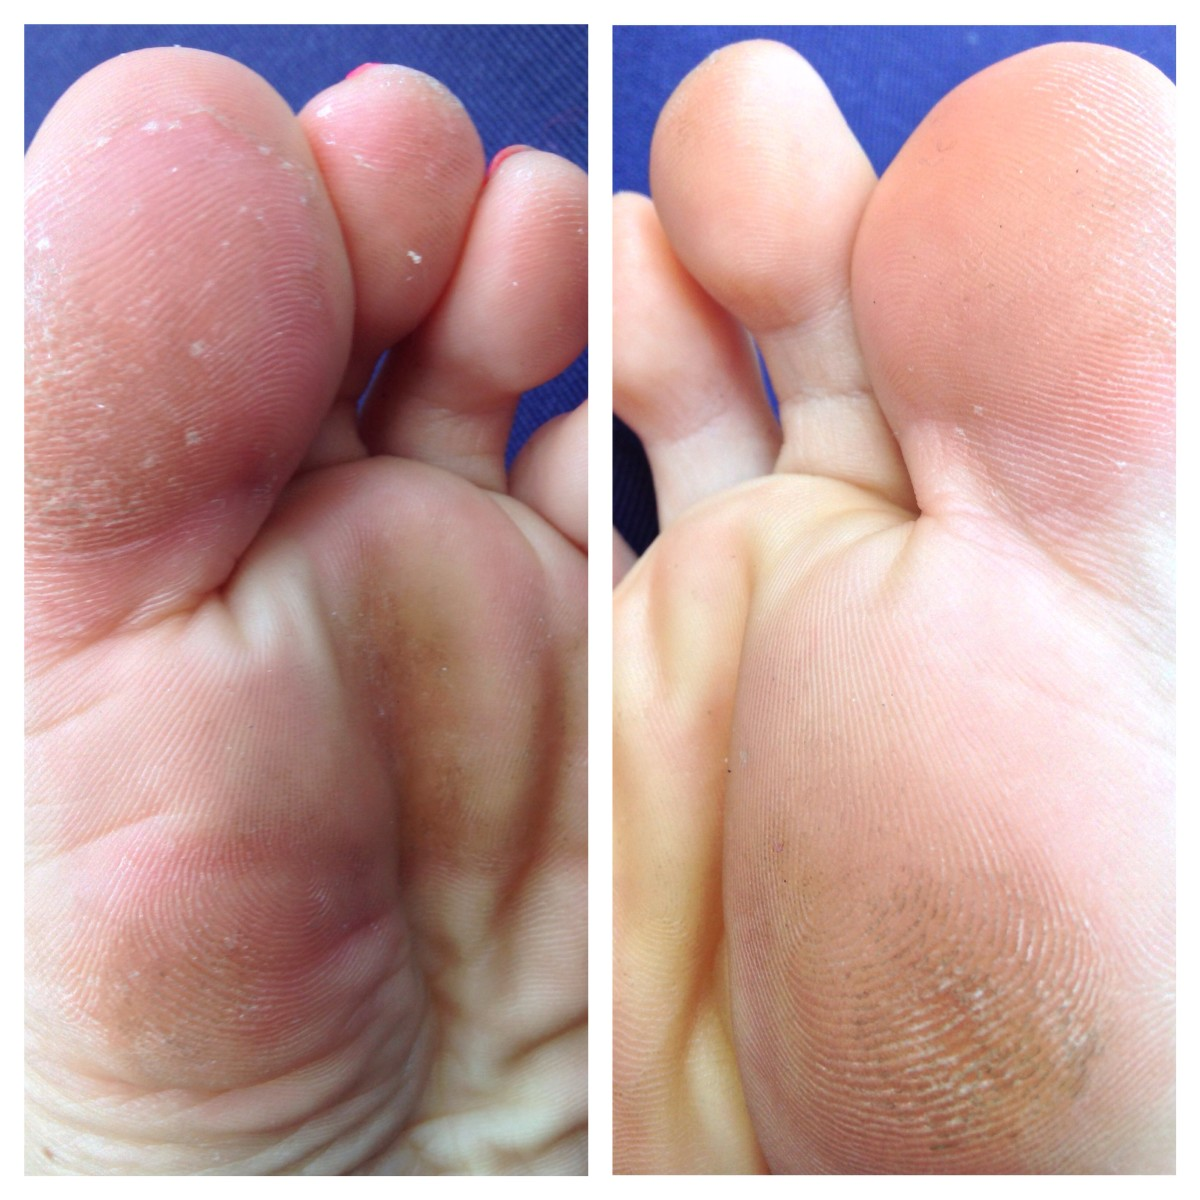 Mild athlete's foot (left) and athlete's-foot-free (right).